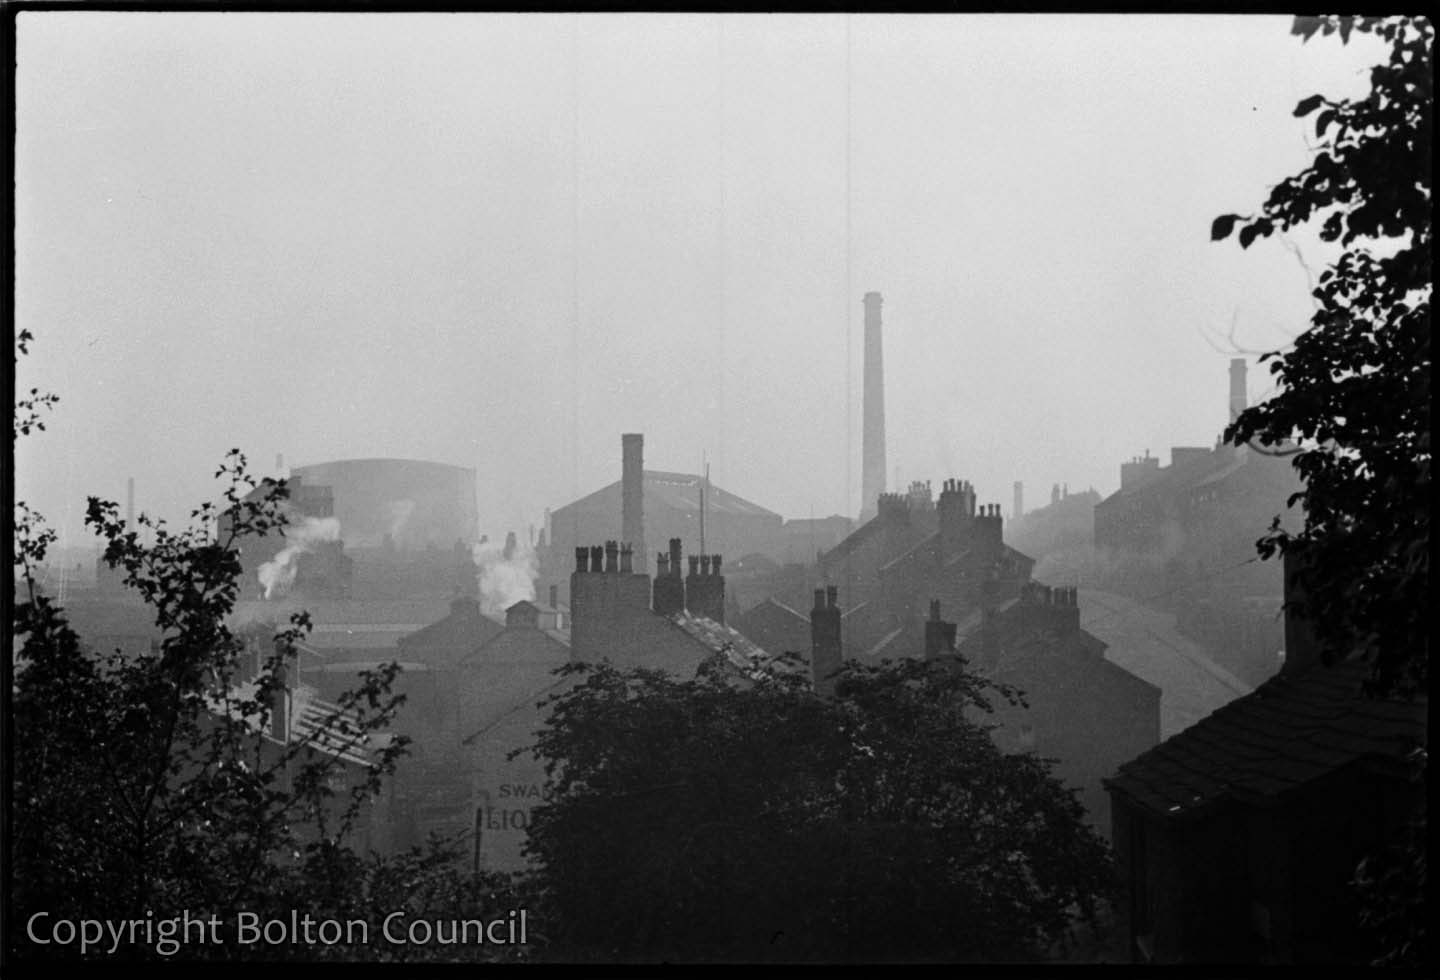 Rooftops of Chorley